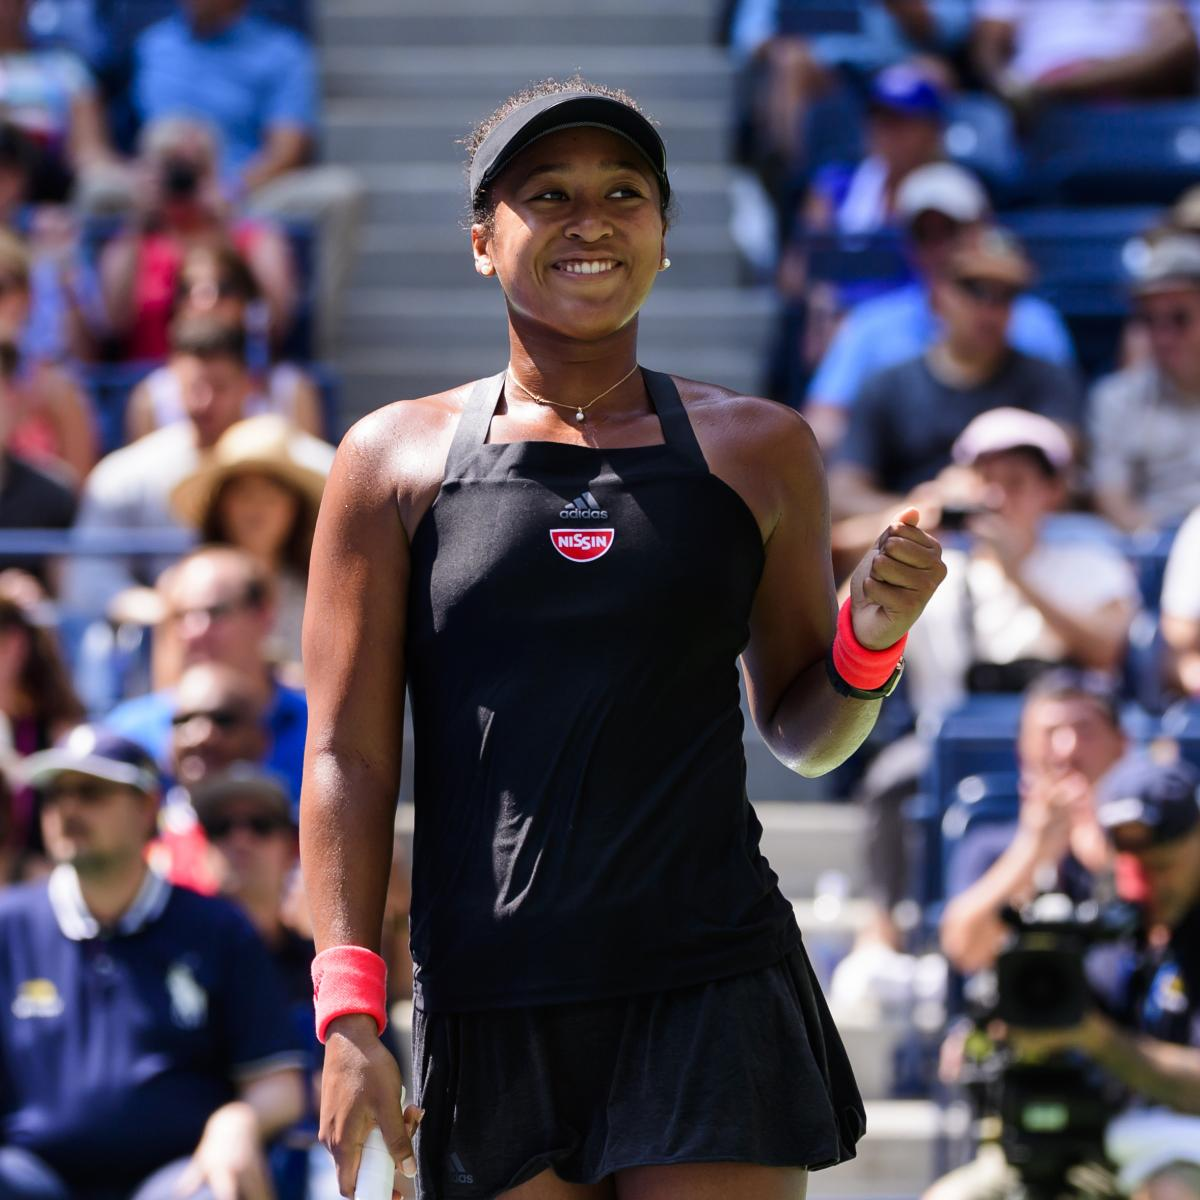 US Open Tennis 2018 Results: Scores, Highlights from Early Wednesday Results